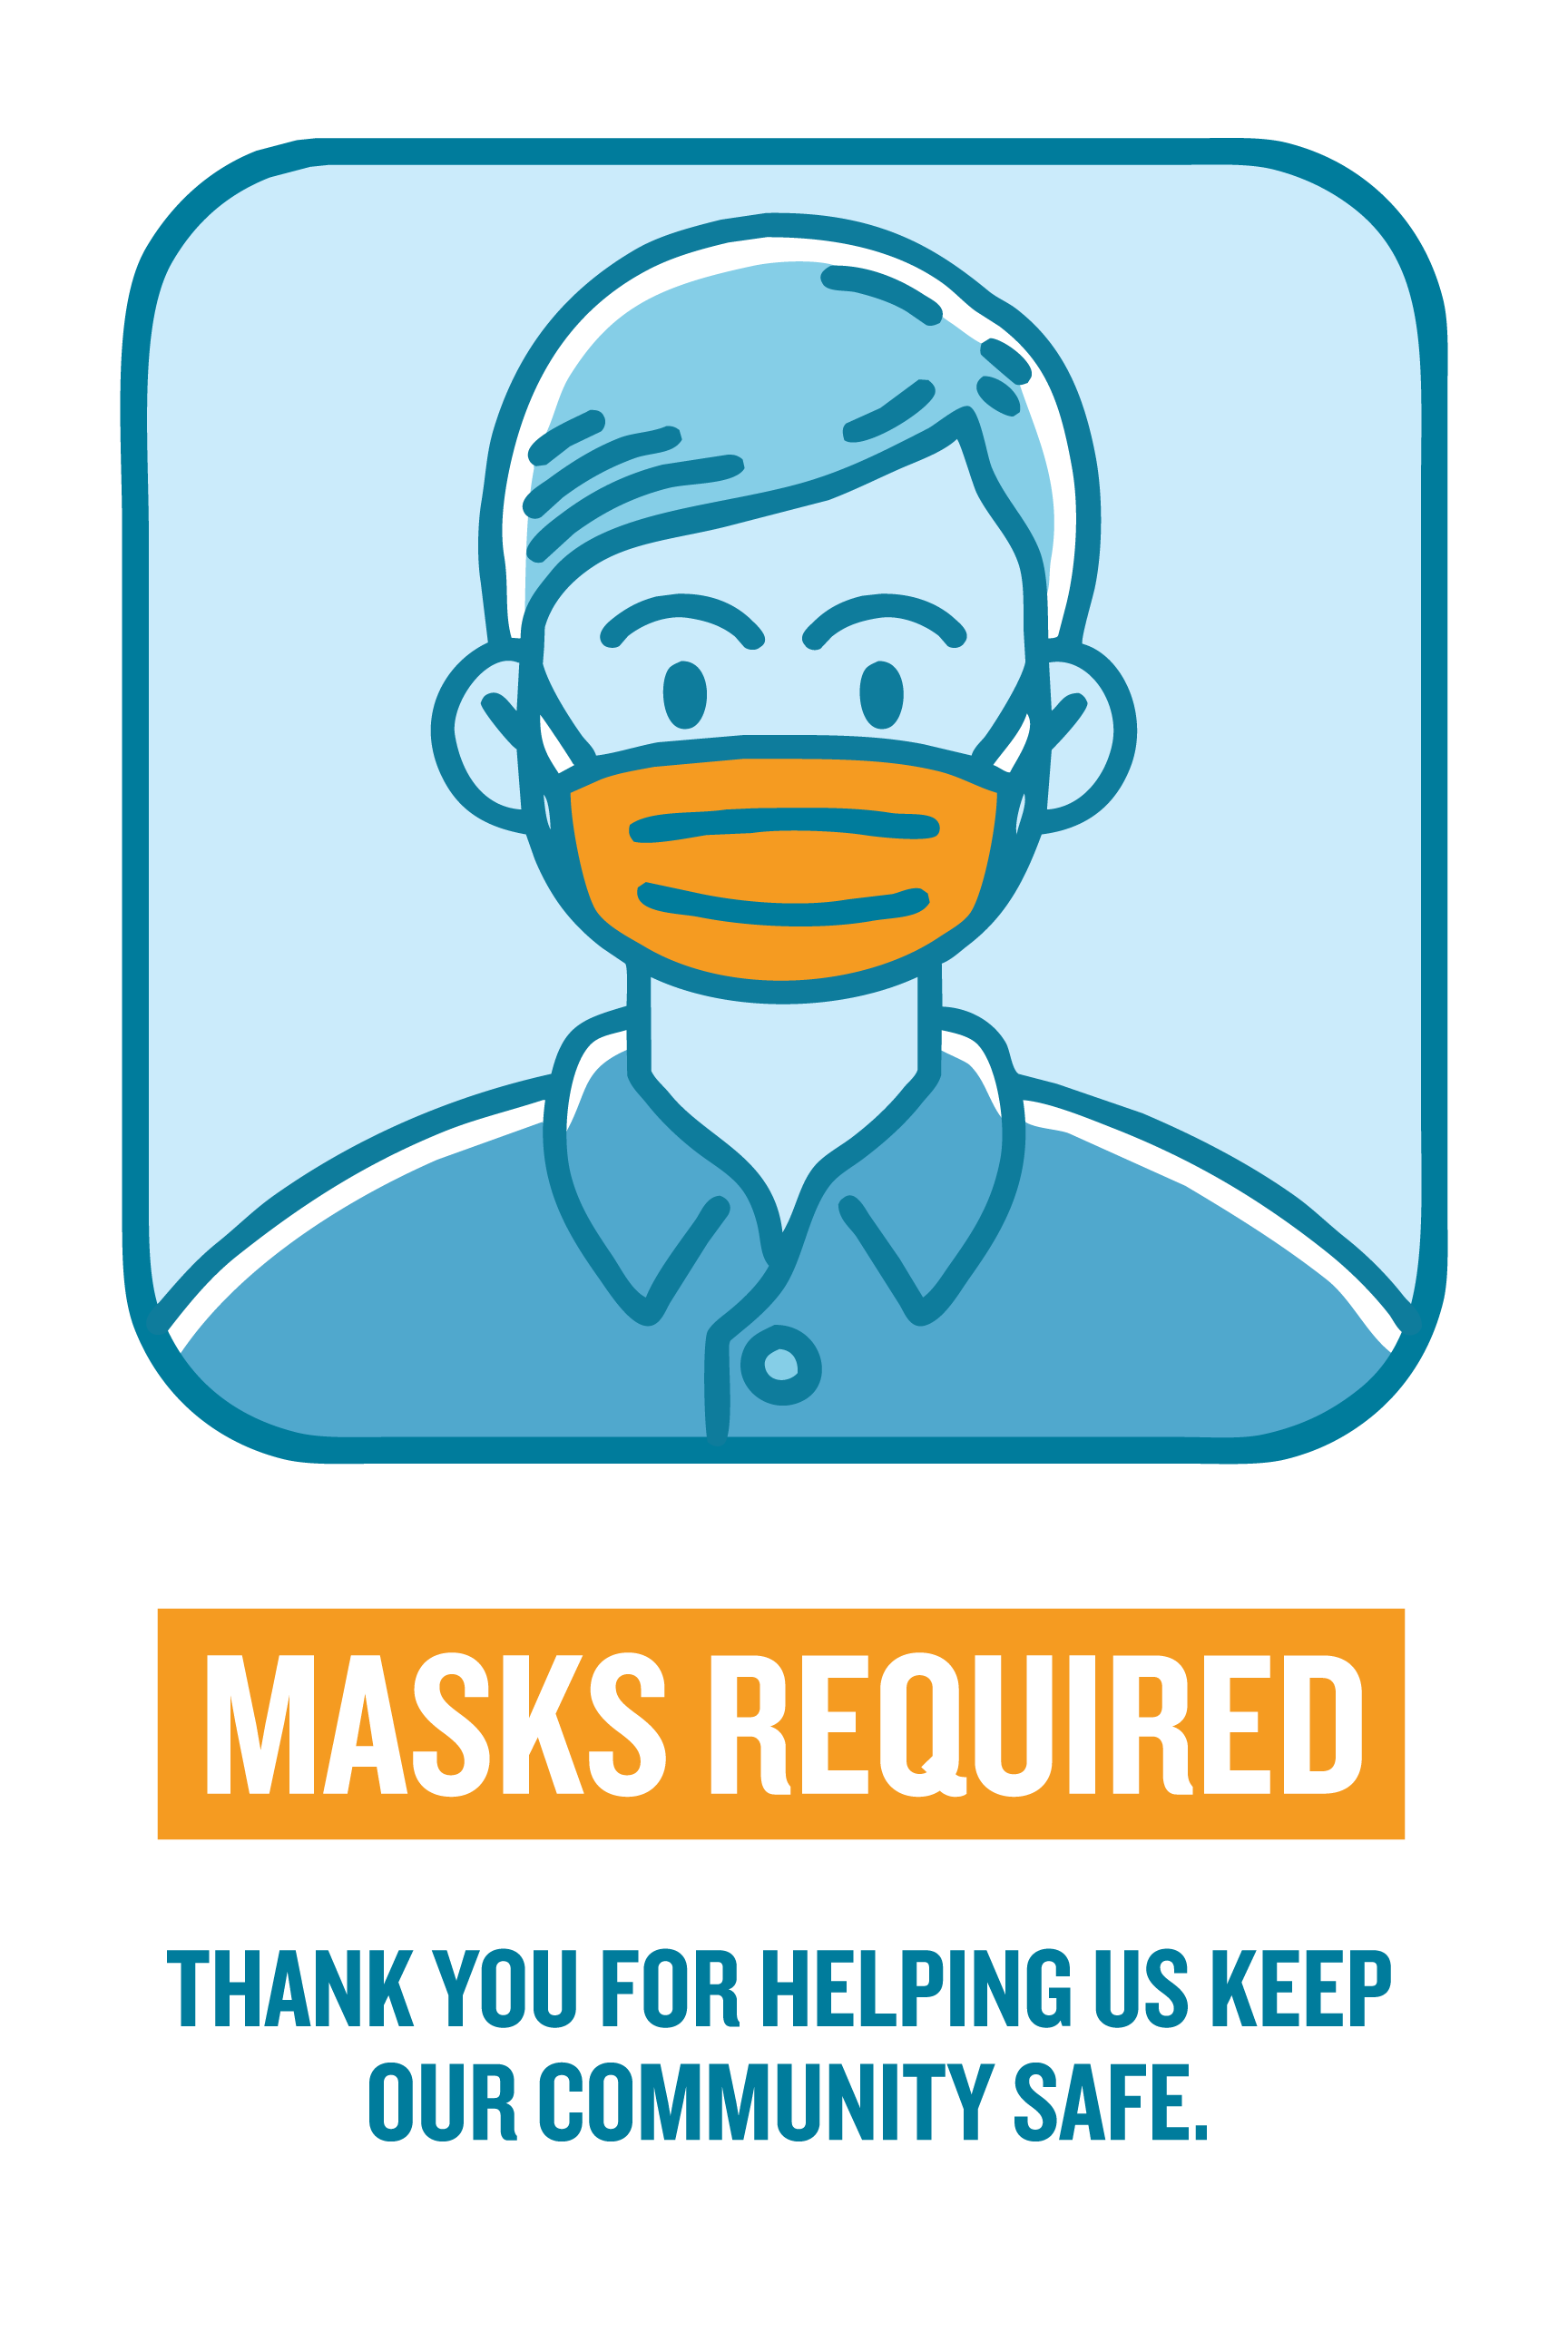 #CV935-masks required